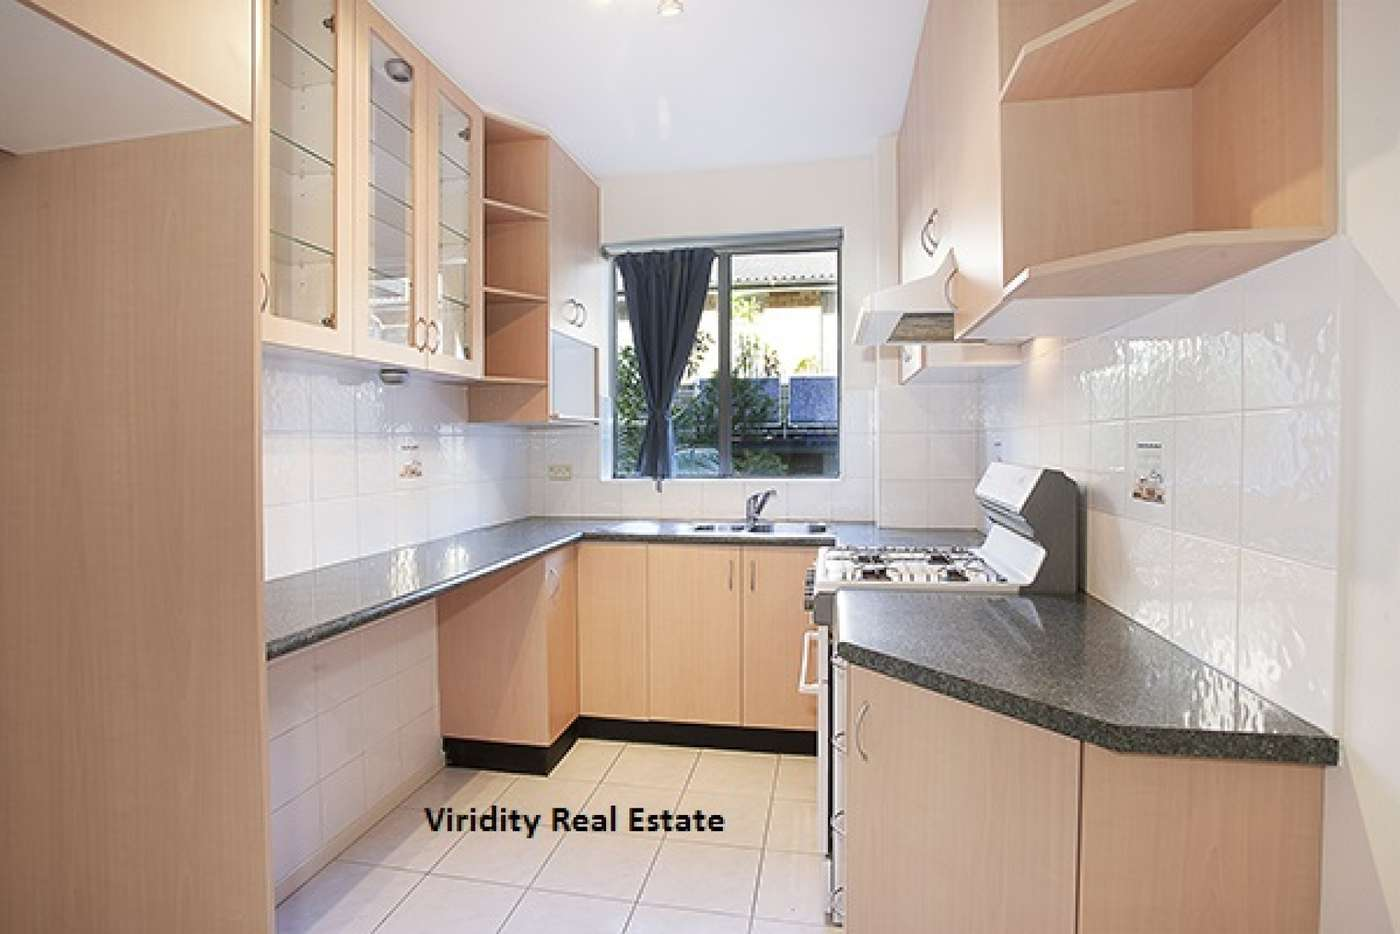 Main view of Homely apartment listing, 23/394 Mowbray Road, Lane Cove NSW 2066